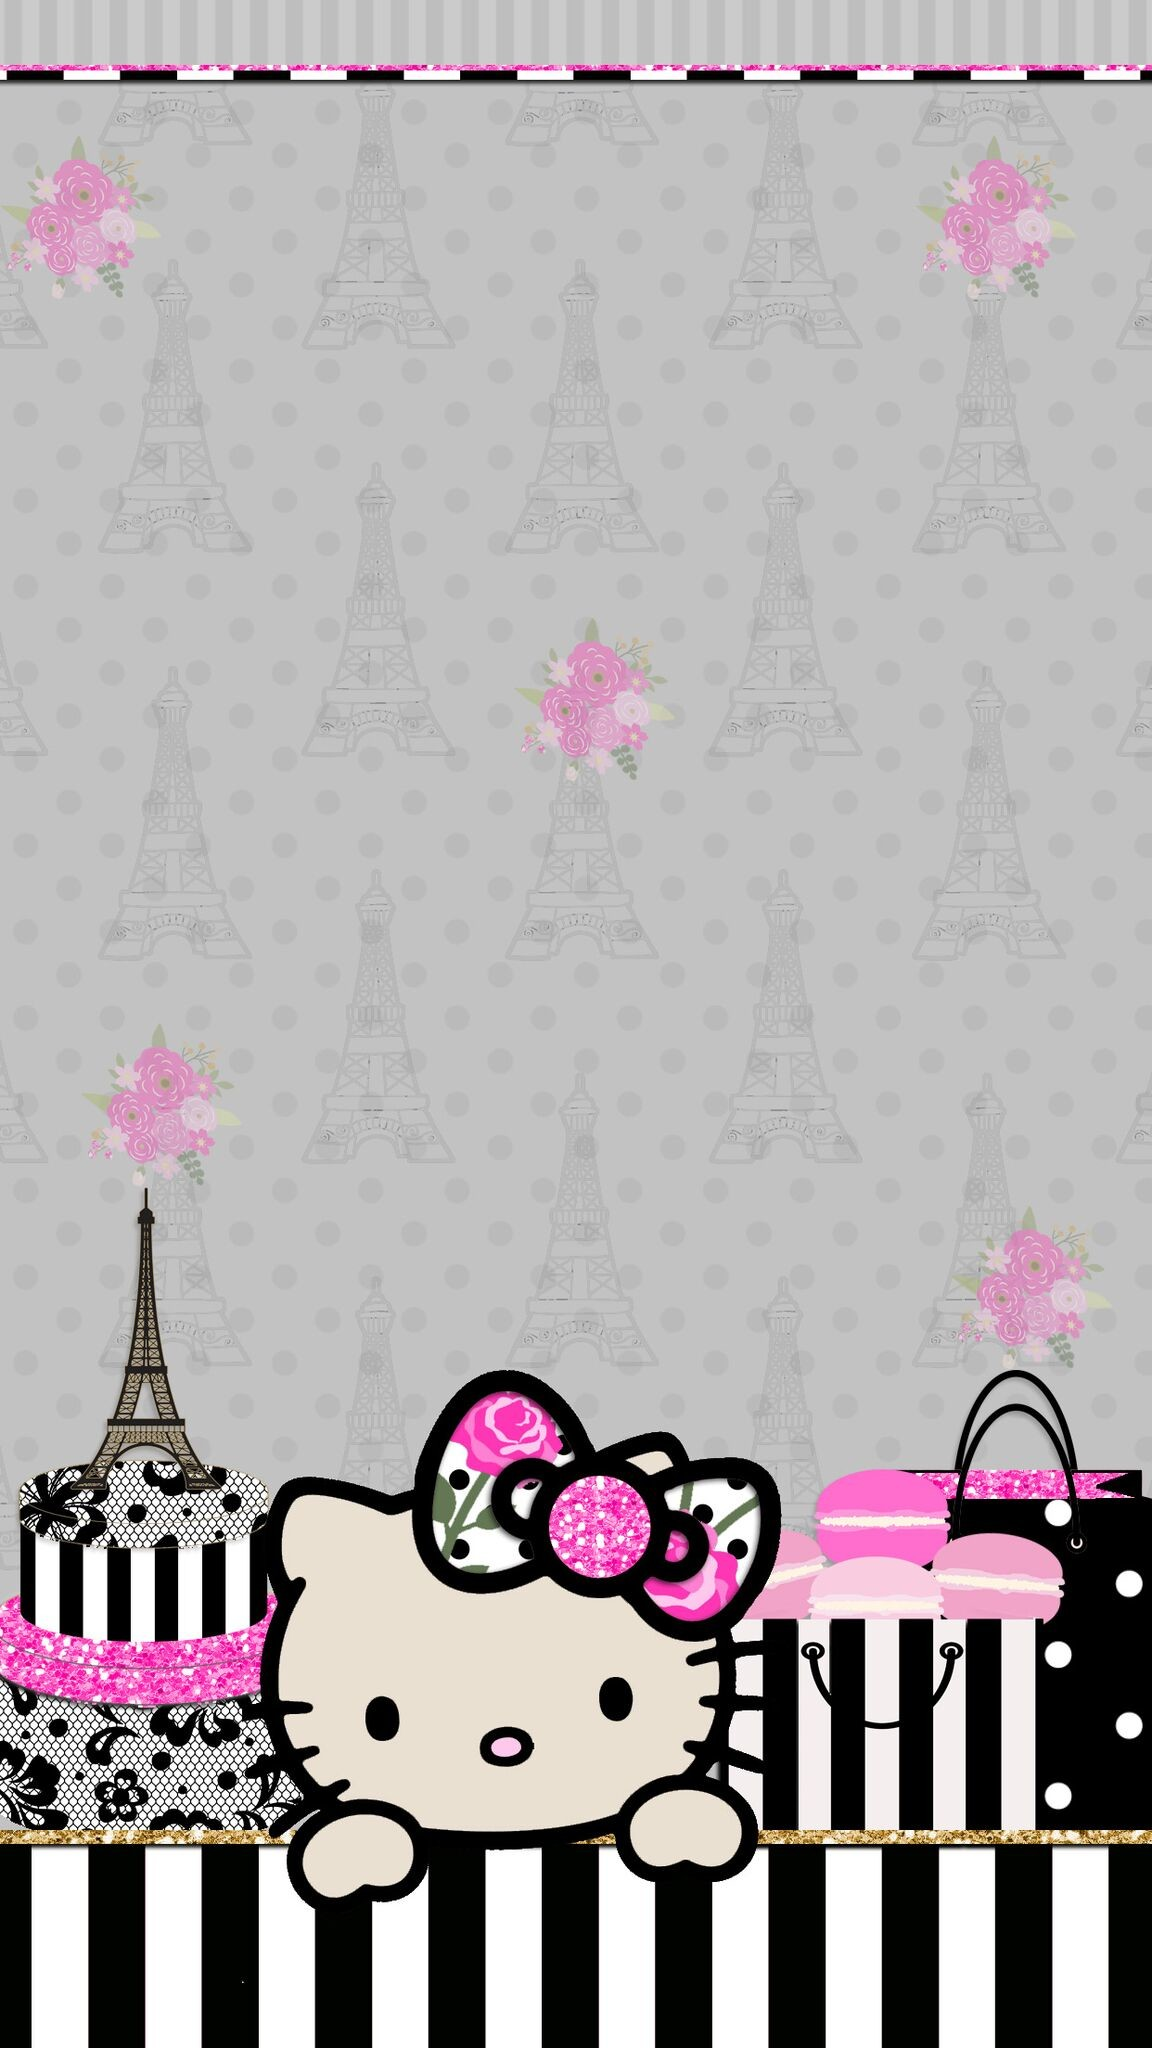 Cool Wallpaper Hello Kitty Iphone 5 - 836521-hello-kitty-wallpaper-1152x2048-for-4k-monitor  You Should Have_759952.jpg